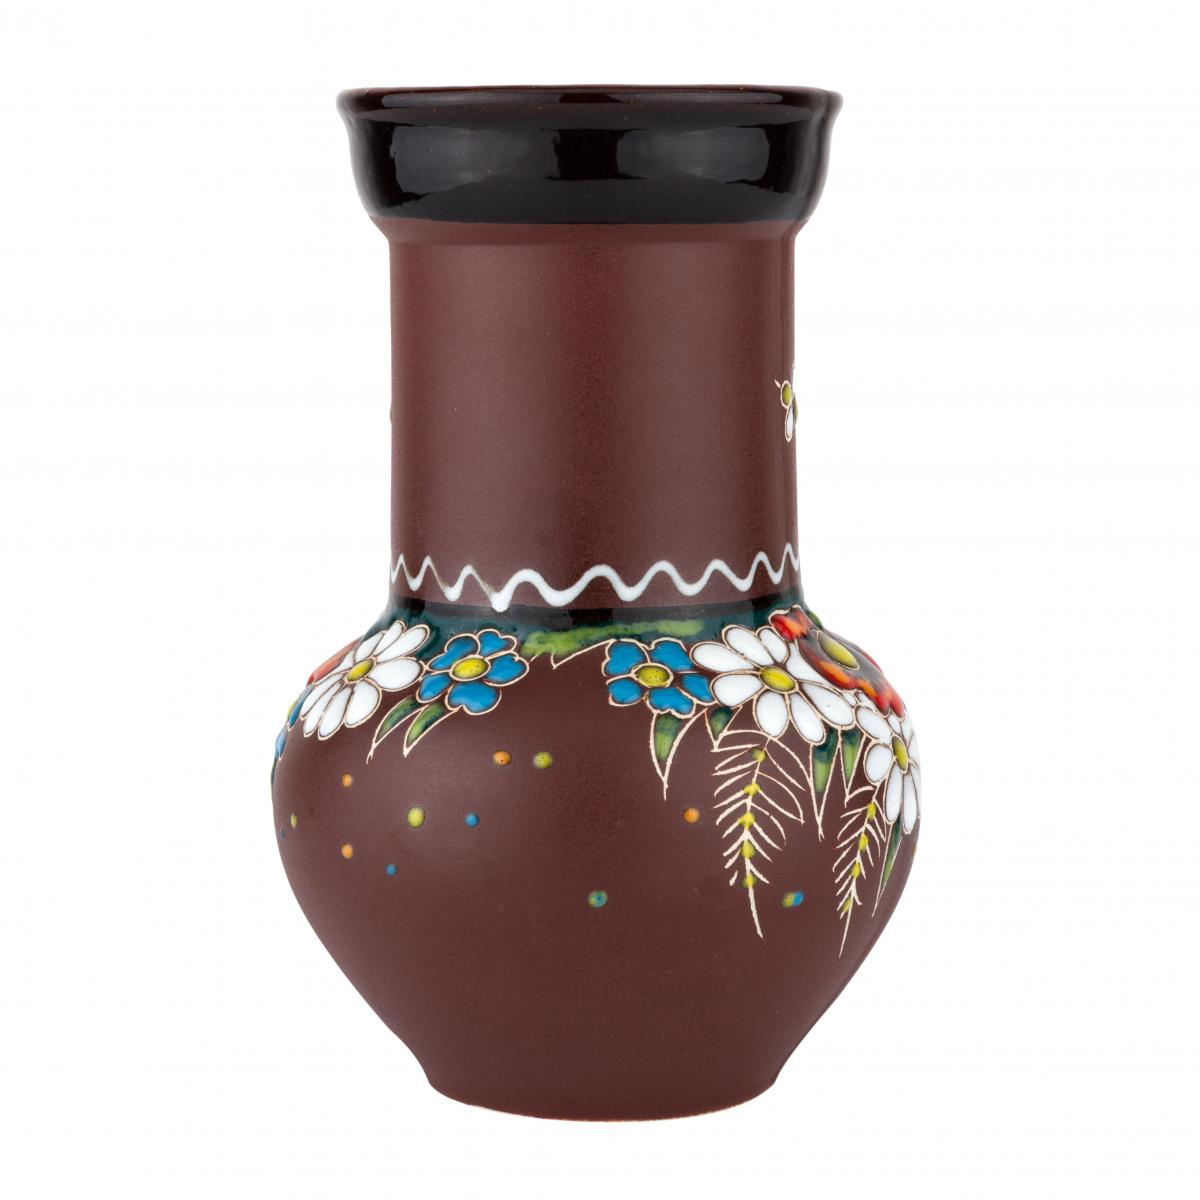 Vase – 1 liter. Photo №2. | Narodnyi dim Ukraine